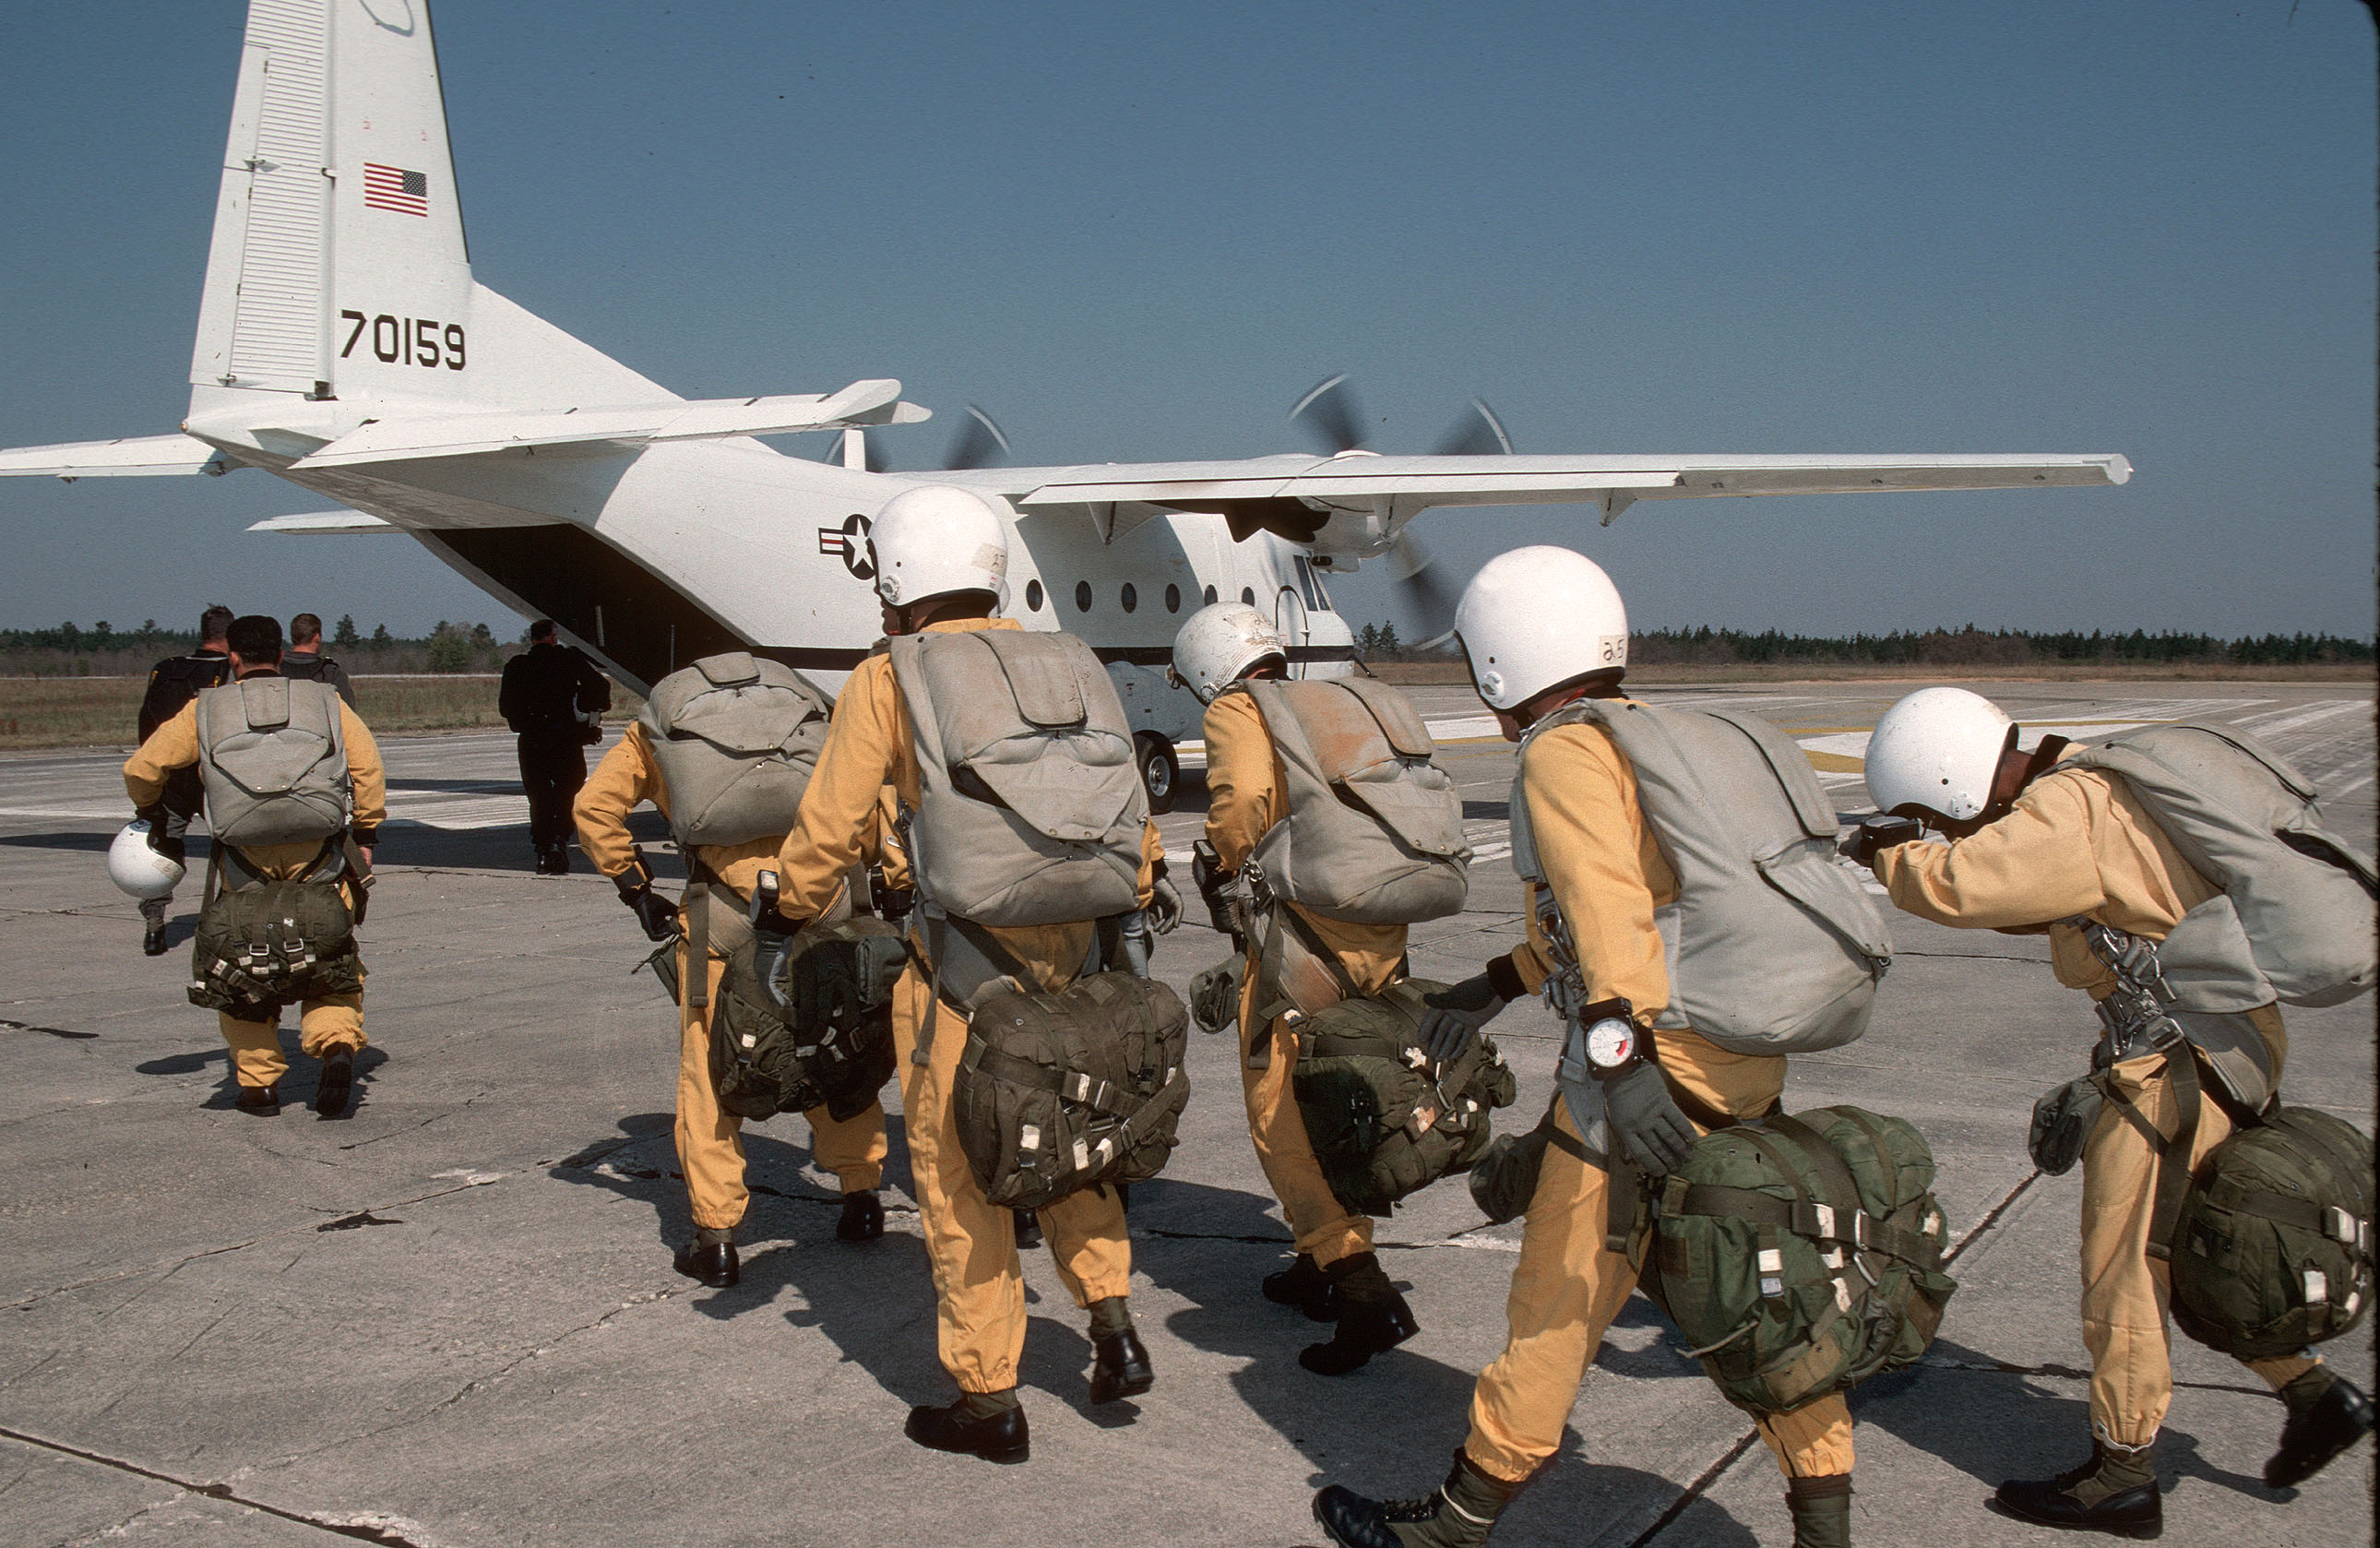 Members Of Delta Force Special Operations Preparing To Conduct HALO HIgh Altitude Low Opening